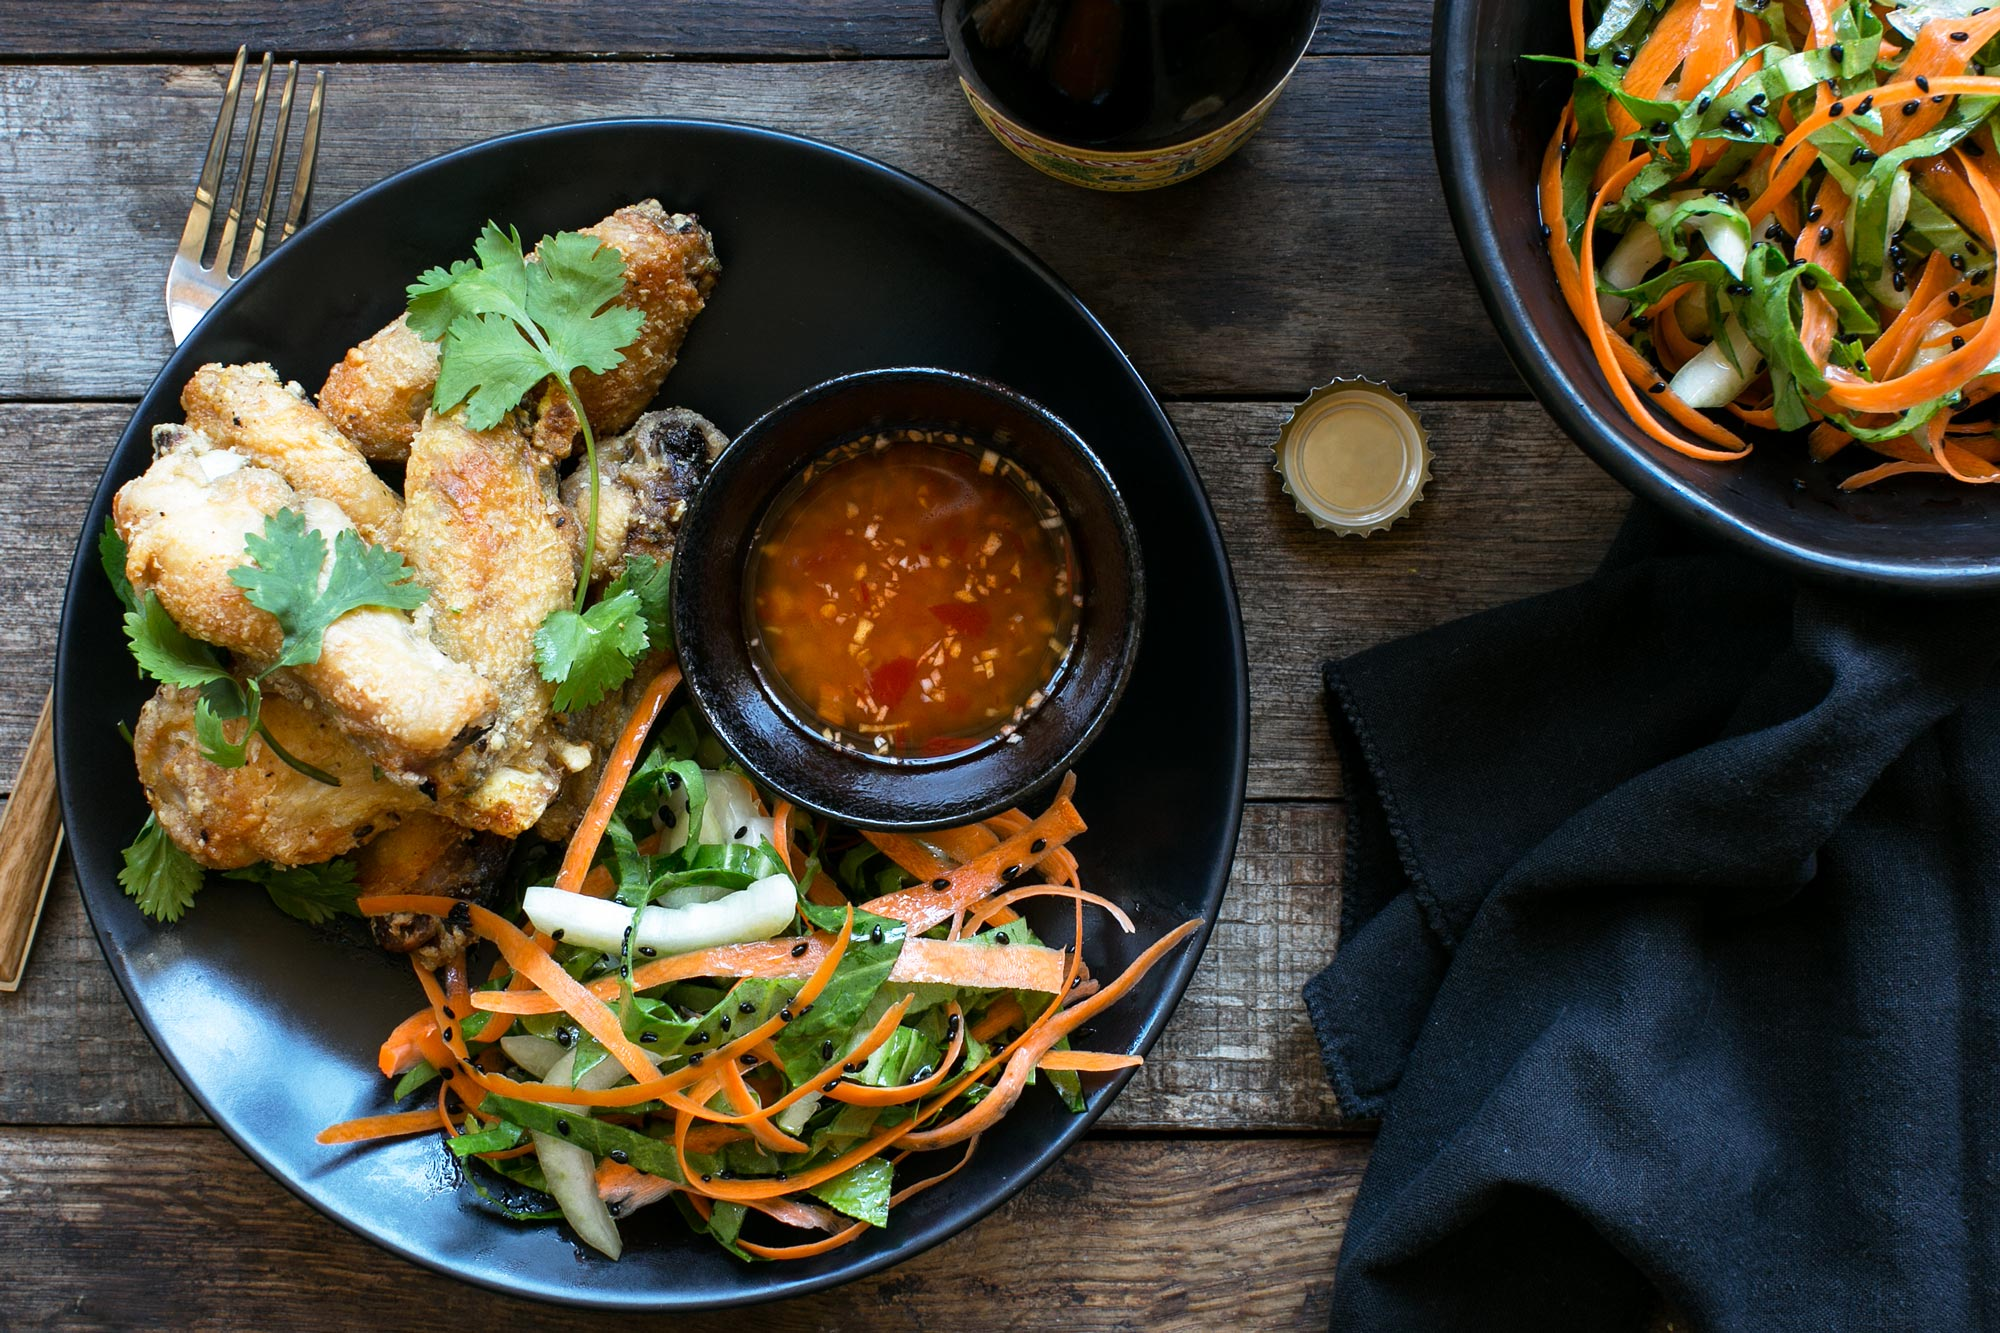 chicken-wings-with-spicy-ginger-sauce-and-bok-choy-black-sesame-slaw